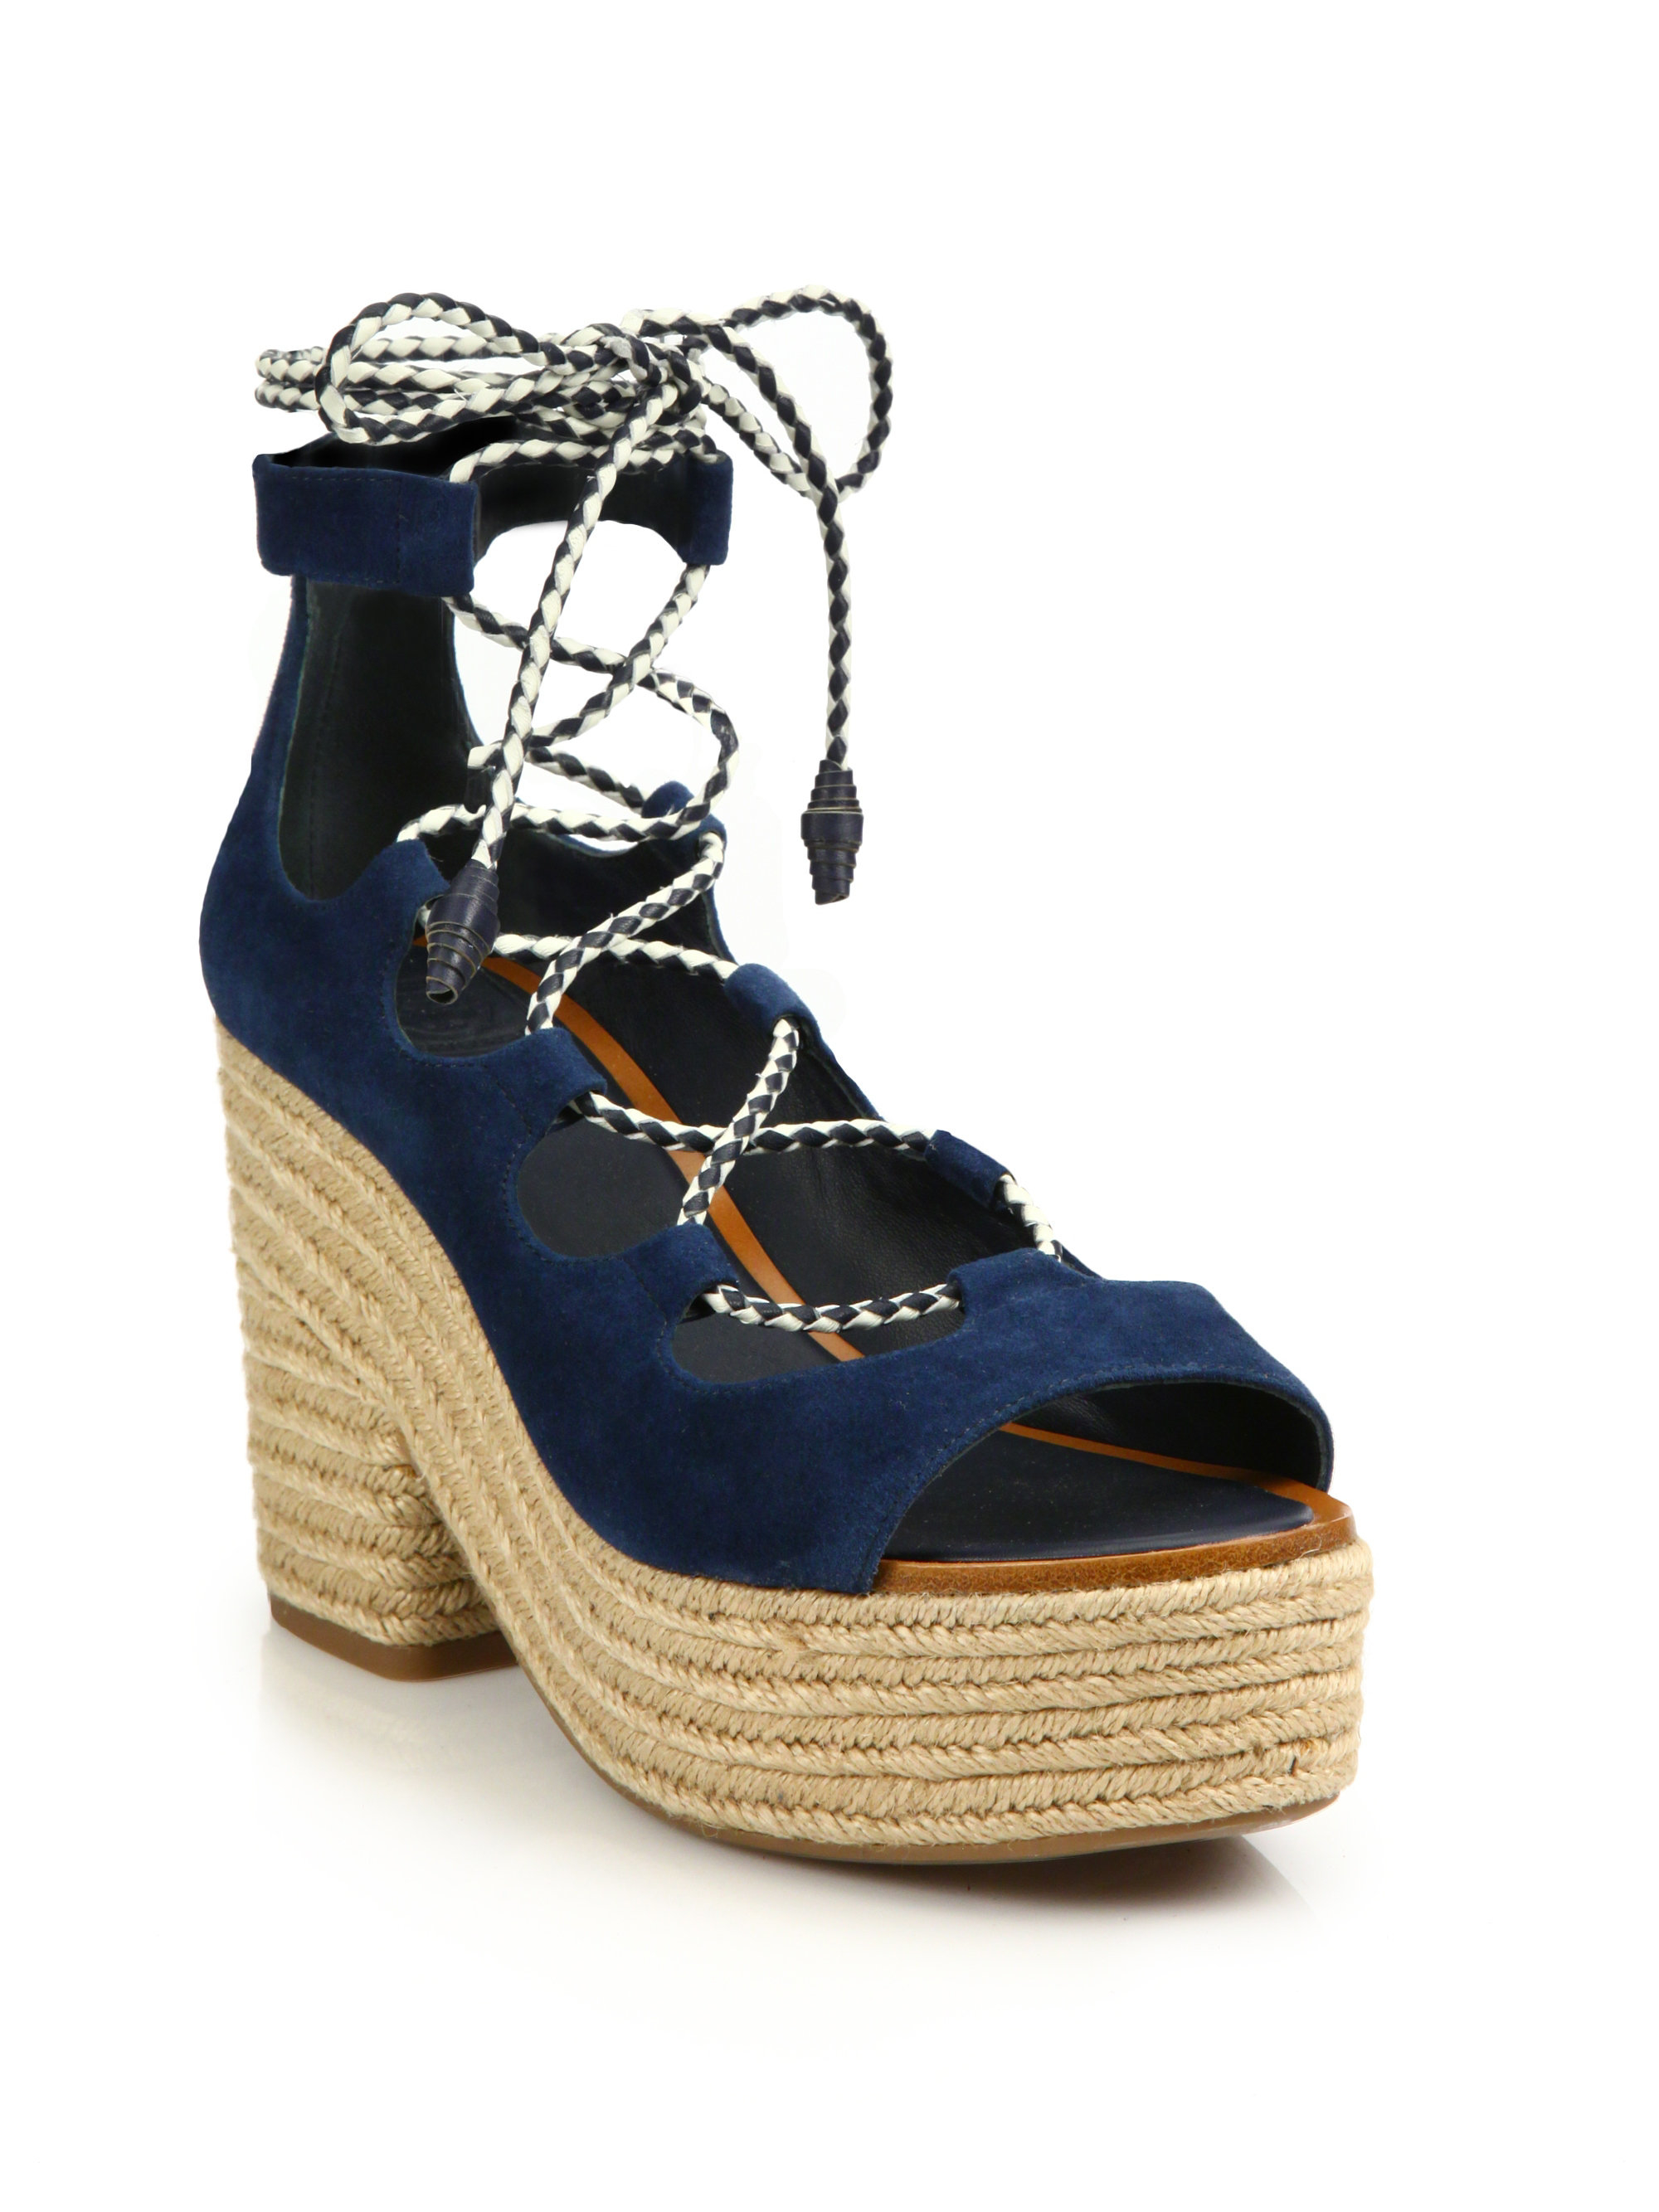 Tory Burch Suede Lace-Up Sandals buy cheap cheap sale get to buy clearance shop v5v2B6